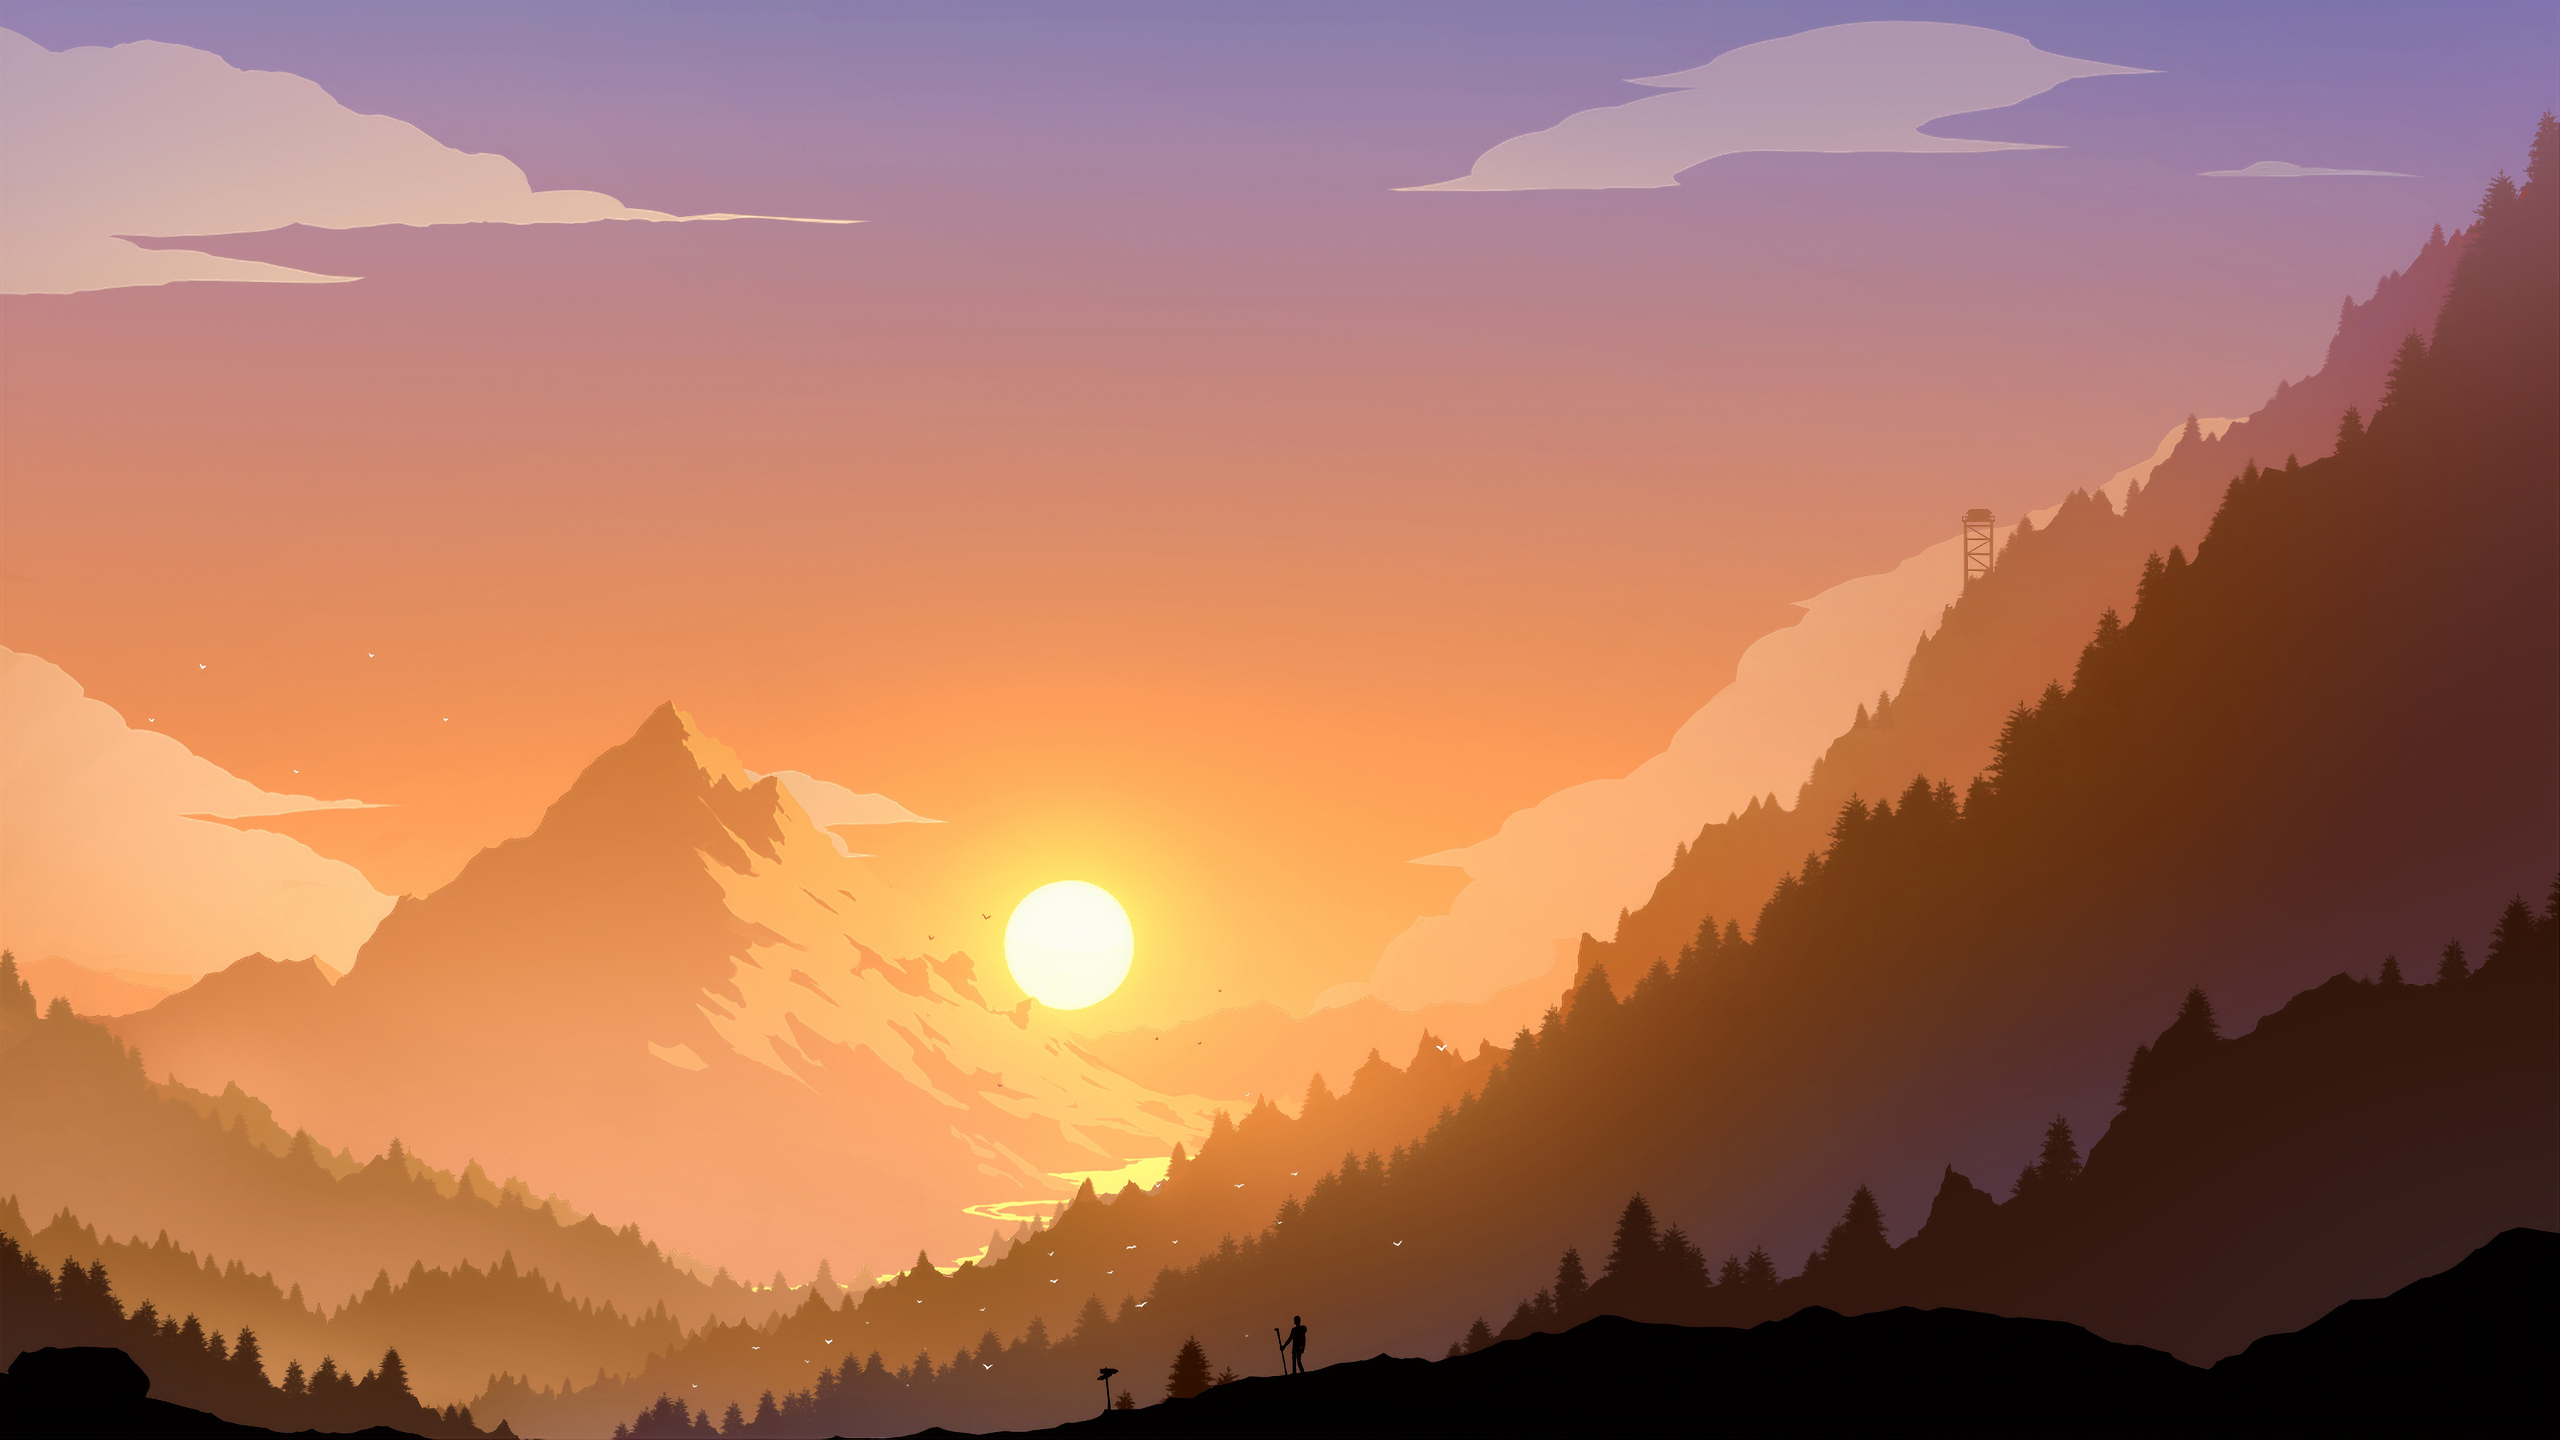 2560x1440 Landscape Scenery Minimal 4k 1440P Resolution HD ...